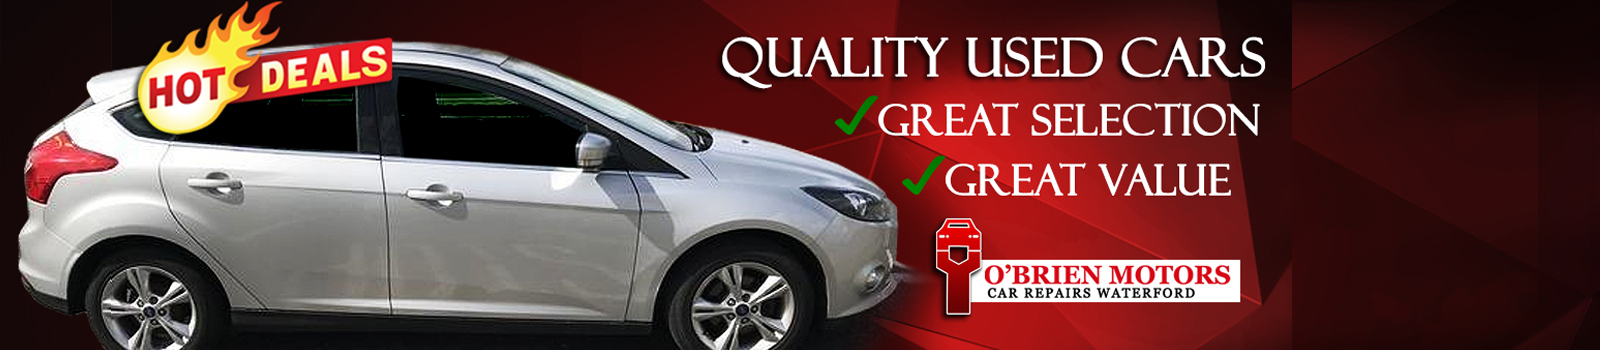 Best-Quality-Used-Cars-For-Sale-Waterford-City